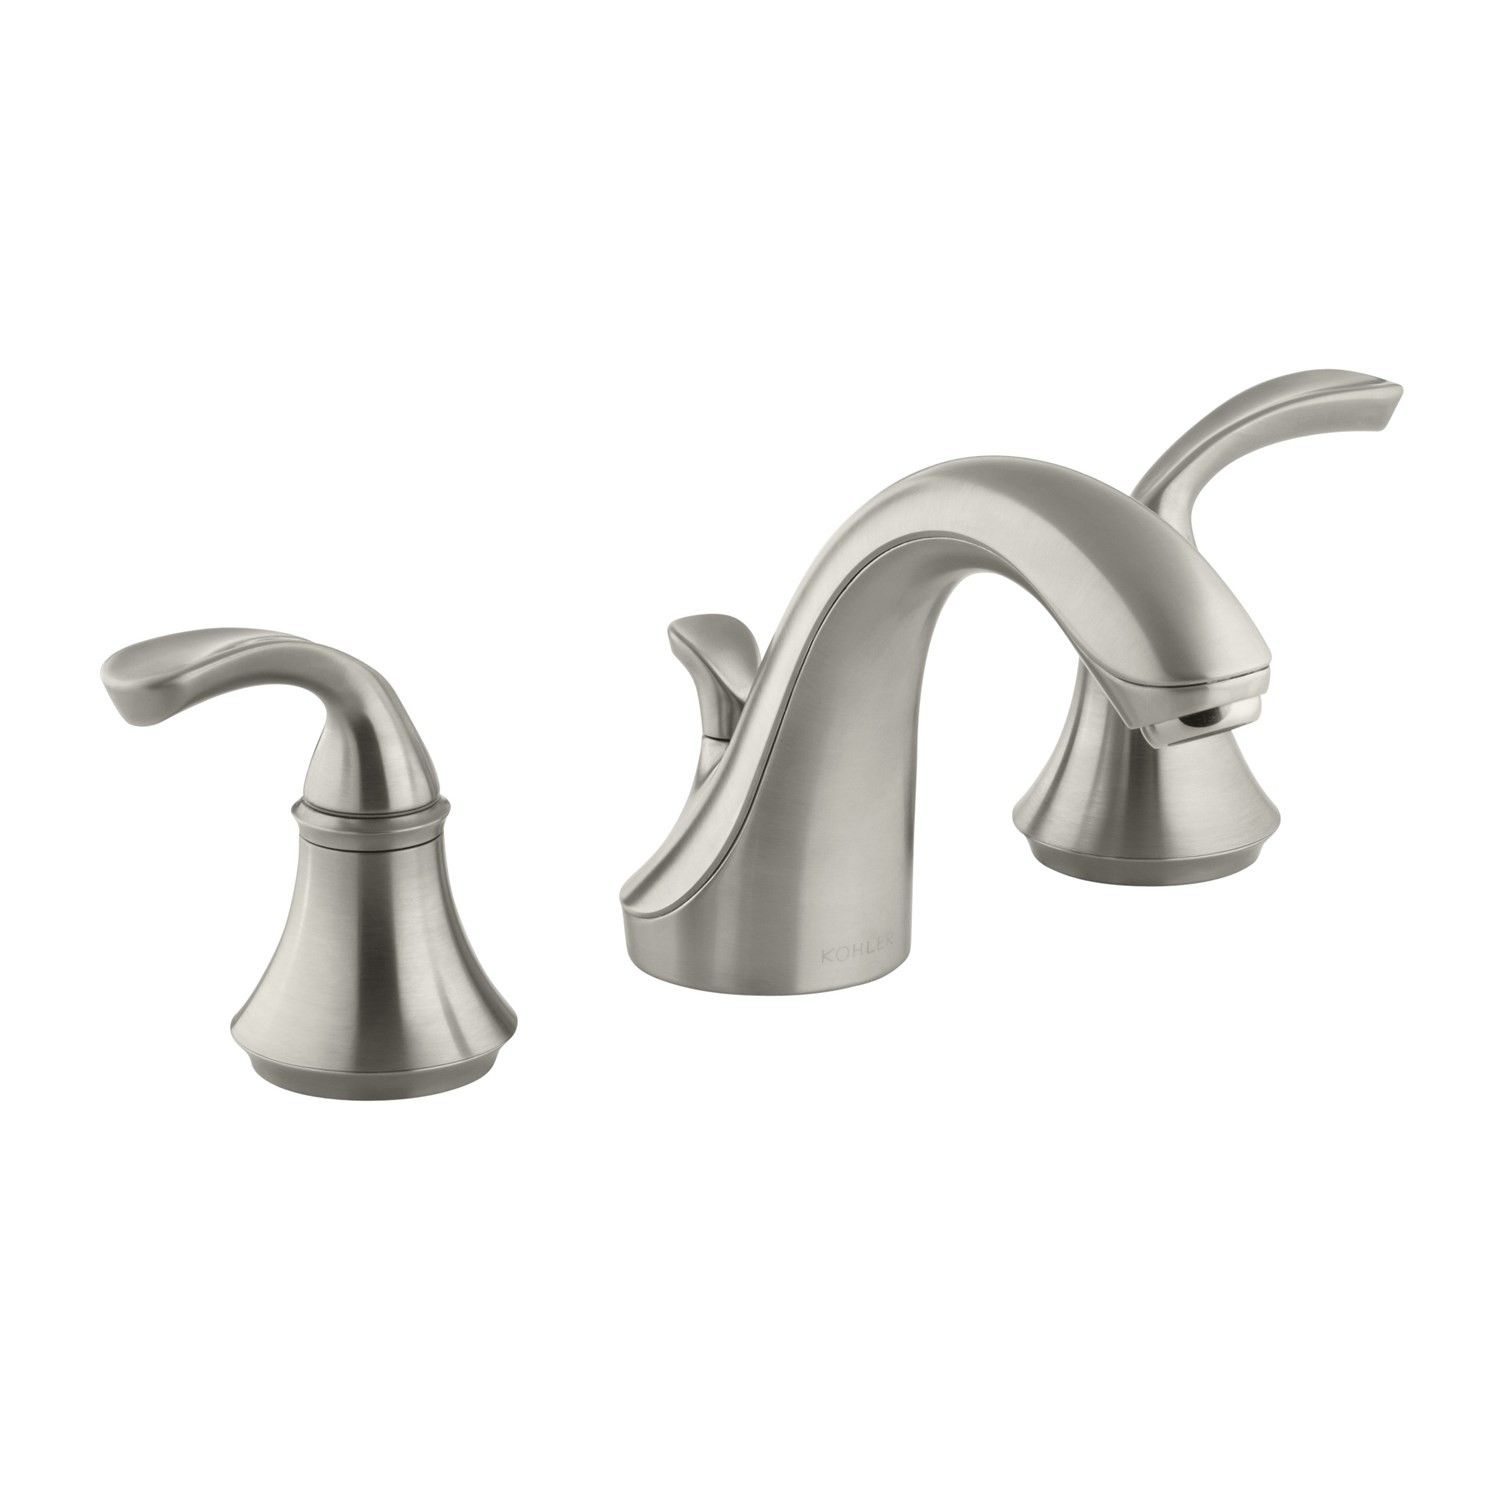 Luxury Sterling Faucet Parts